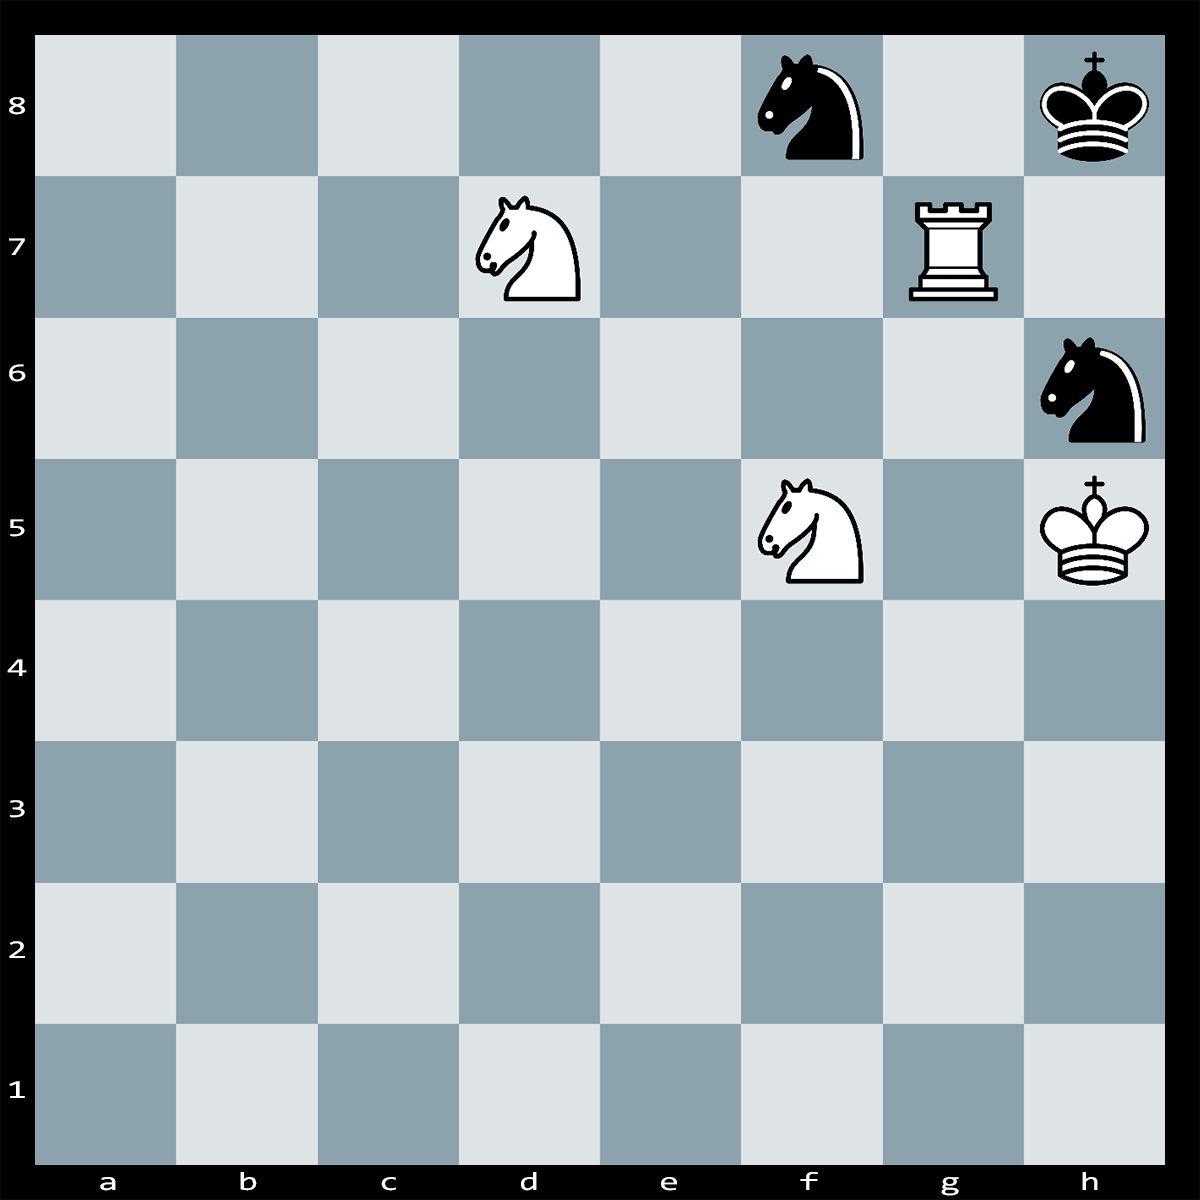 Find checkmate in 2 moves - chess puzzle #2